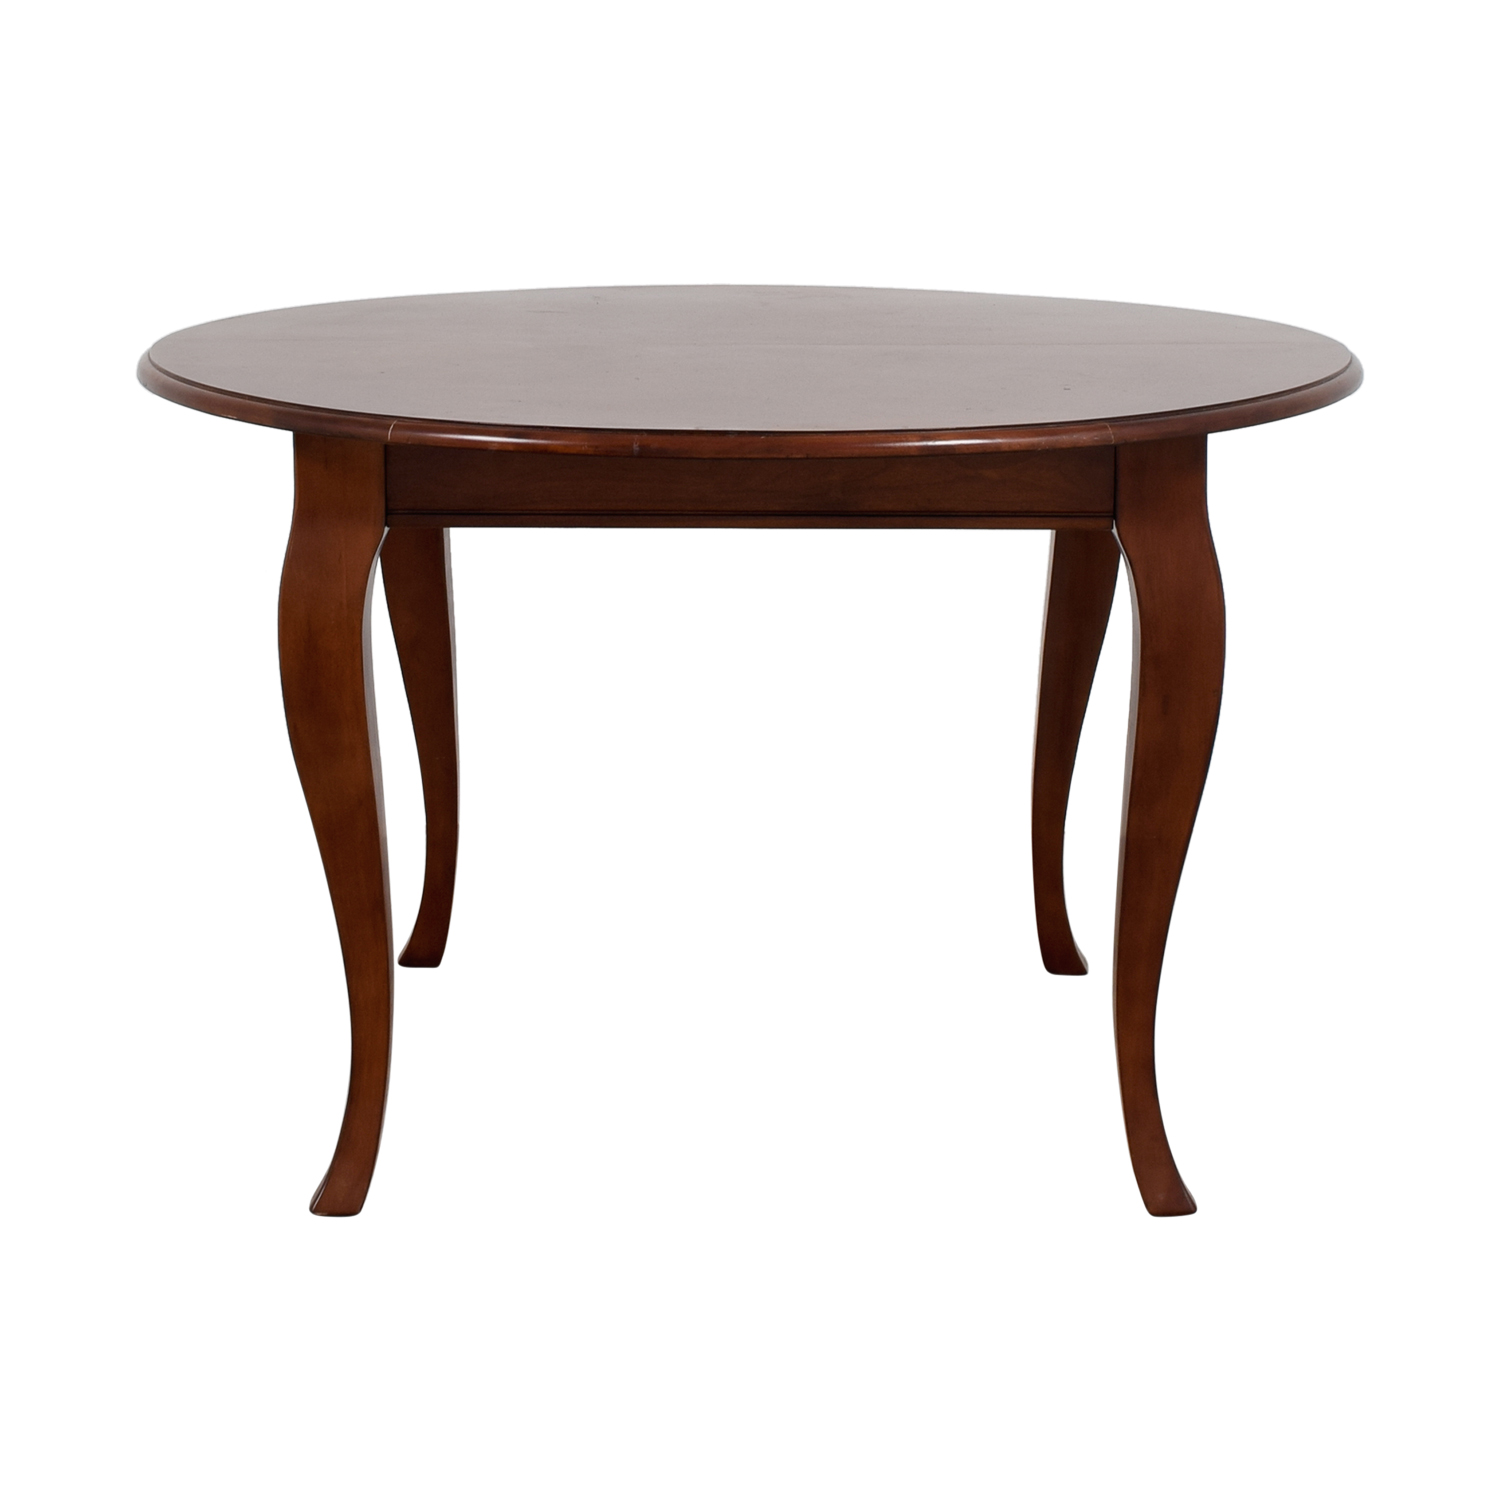 Broyhill Wooden Dining Room Table / Dinner Tables